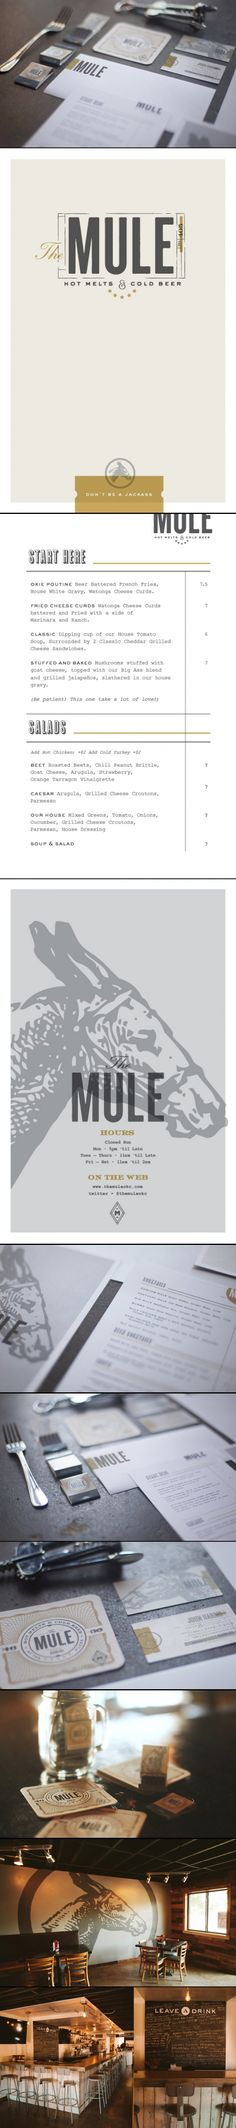 The Mule menu & restaurant branding (by Foundry Collective)                                                                                                                                                     More                                                                                                                                                                                 More